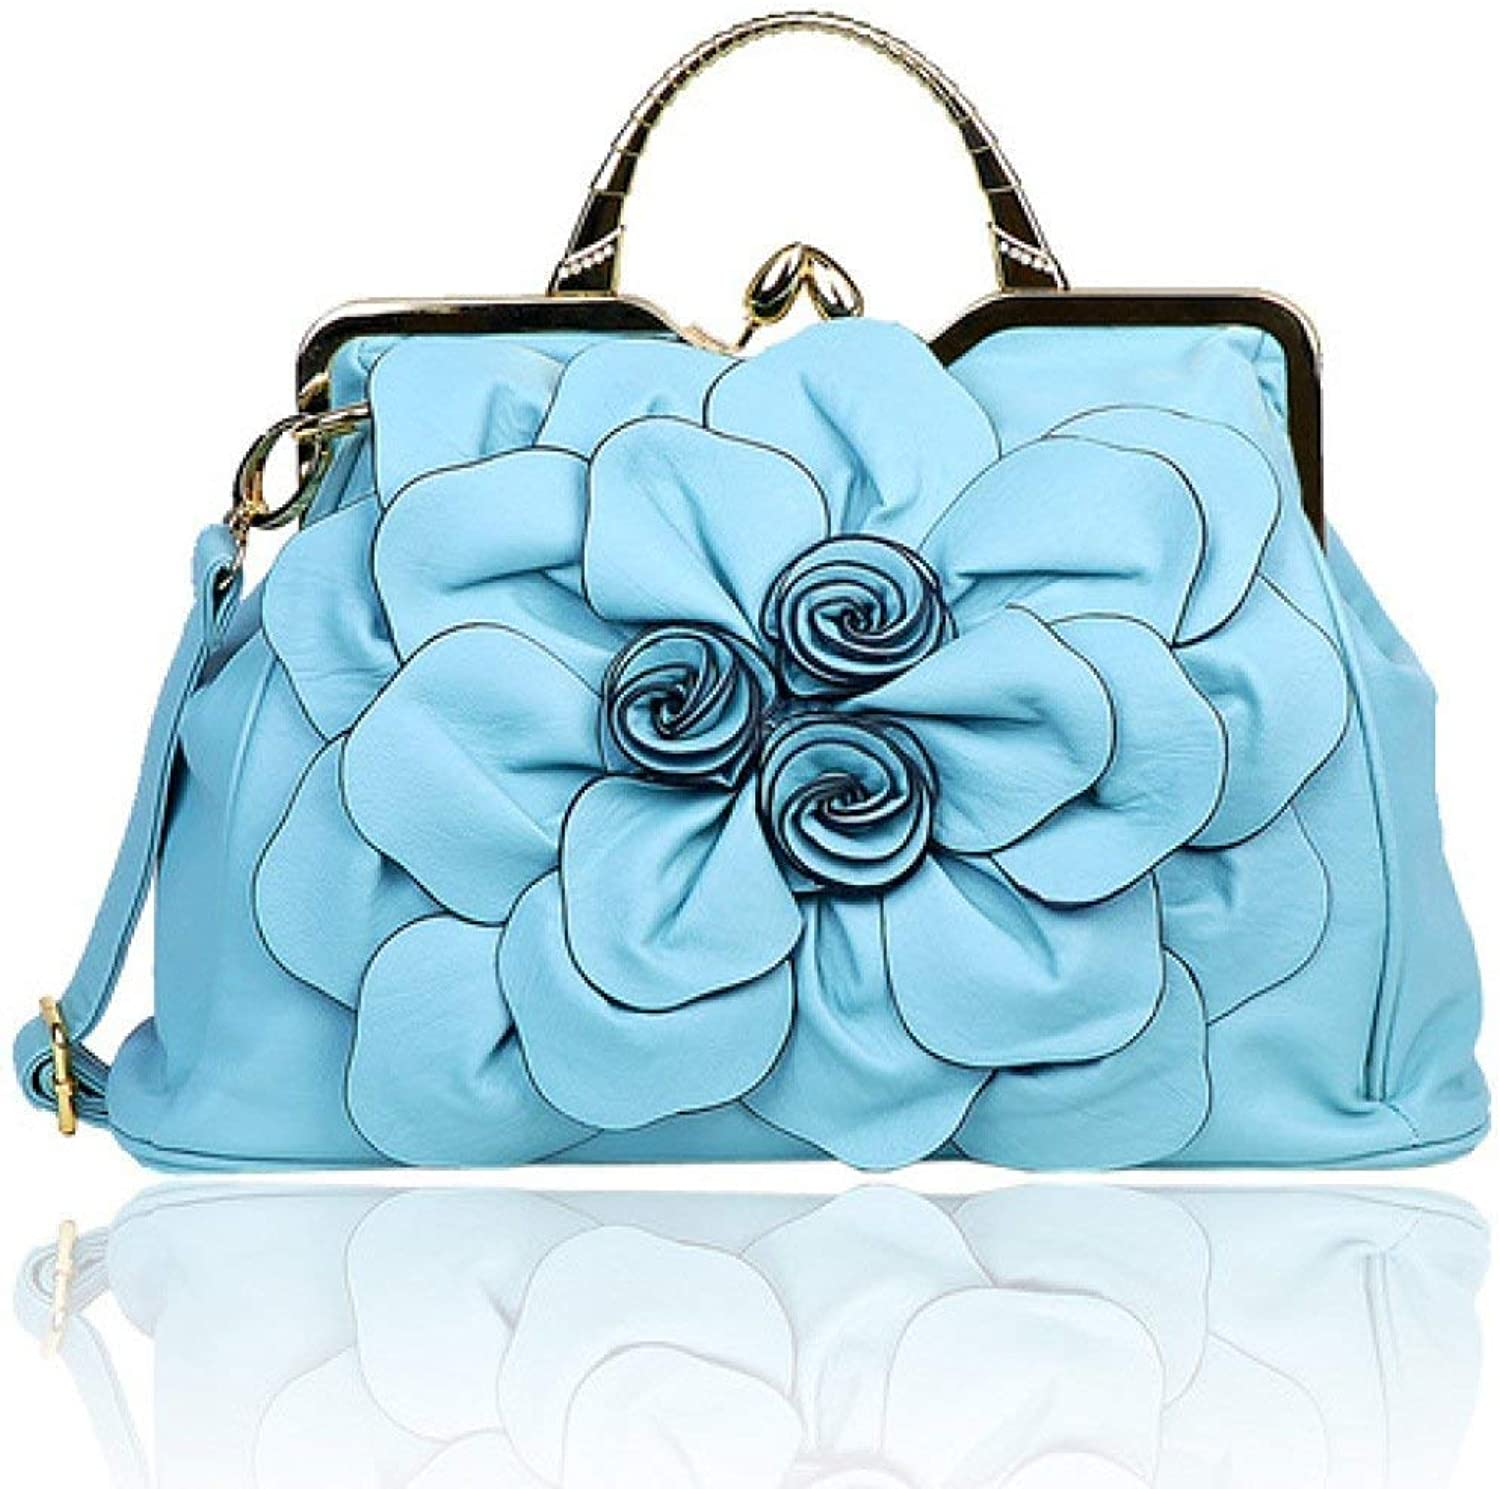 BeTTi 2019 Spring New Women's Bag with DiamondEncrusted pink Big Flower Bag Korean Version Fashion 100 Hand Bill of Lading Shoulder Crossbody Bag (color   Light bluee, Size   Size)